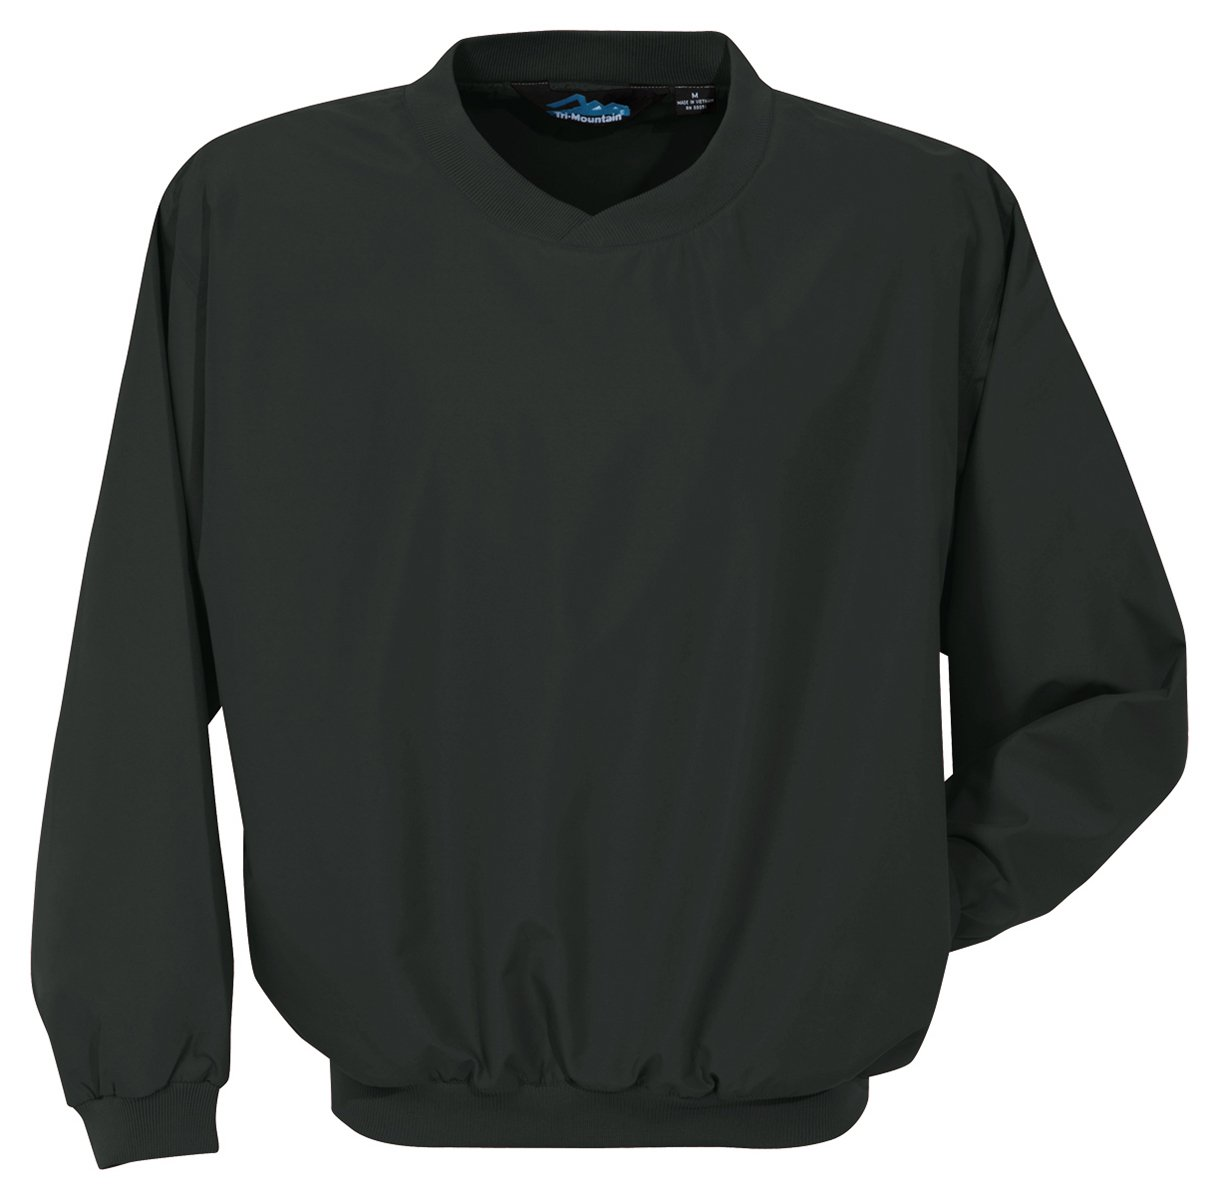 Tri-Mountain Water Resistant Windproof Windshirt 2500